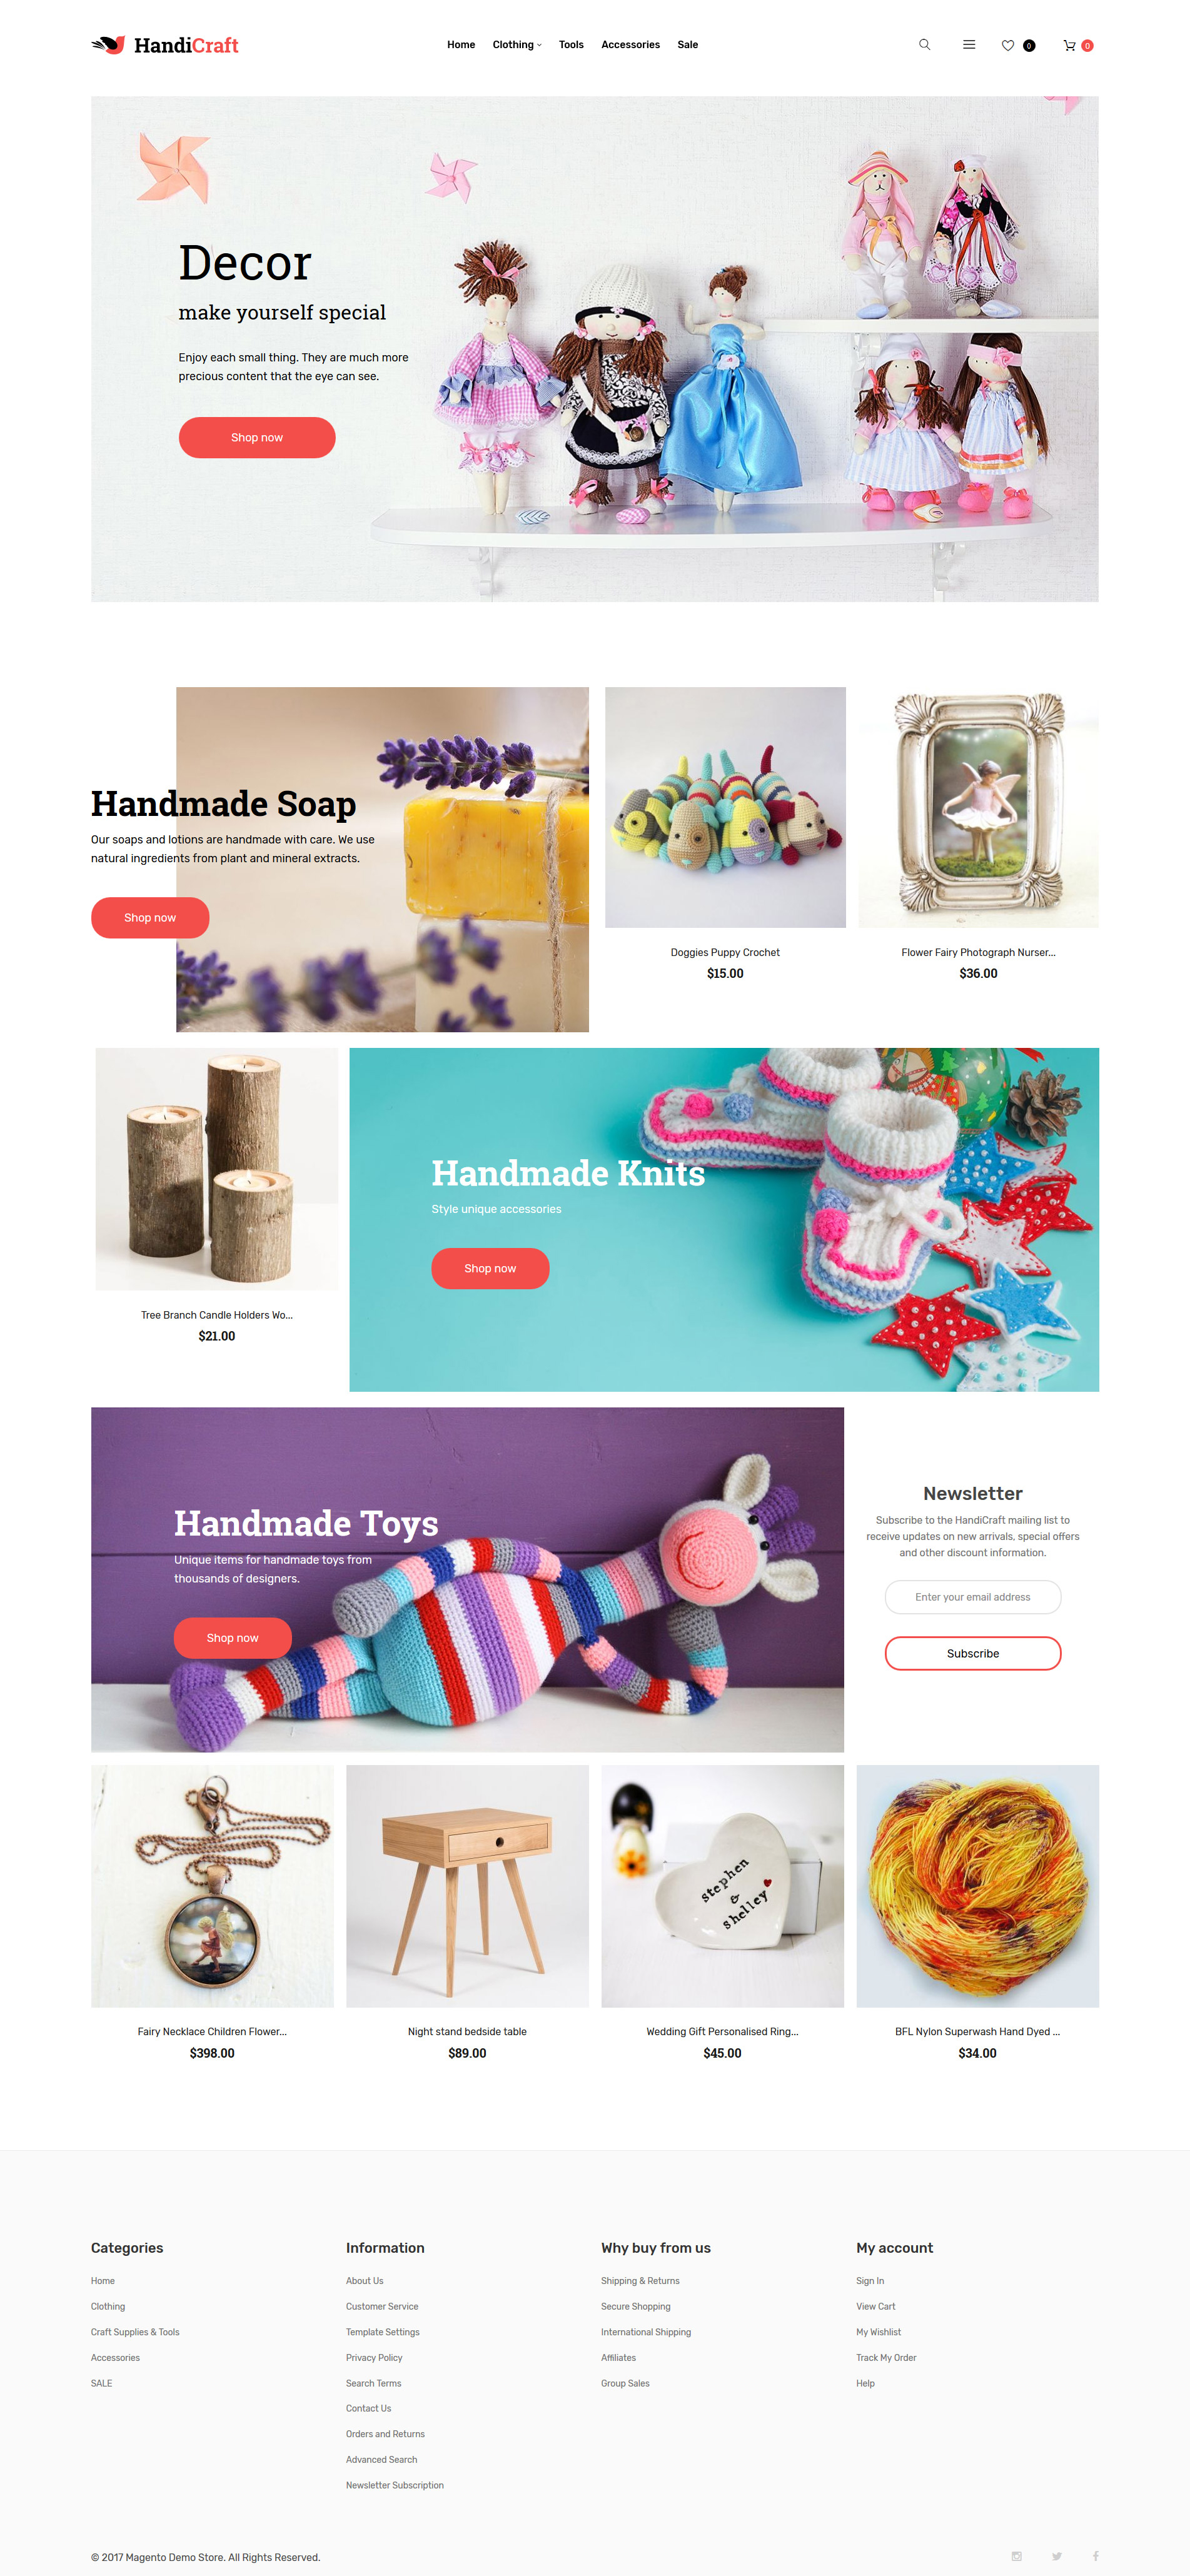 HandiCraft - Handmade Goods Shop Responsive Magento Theme